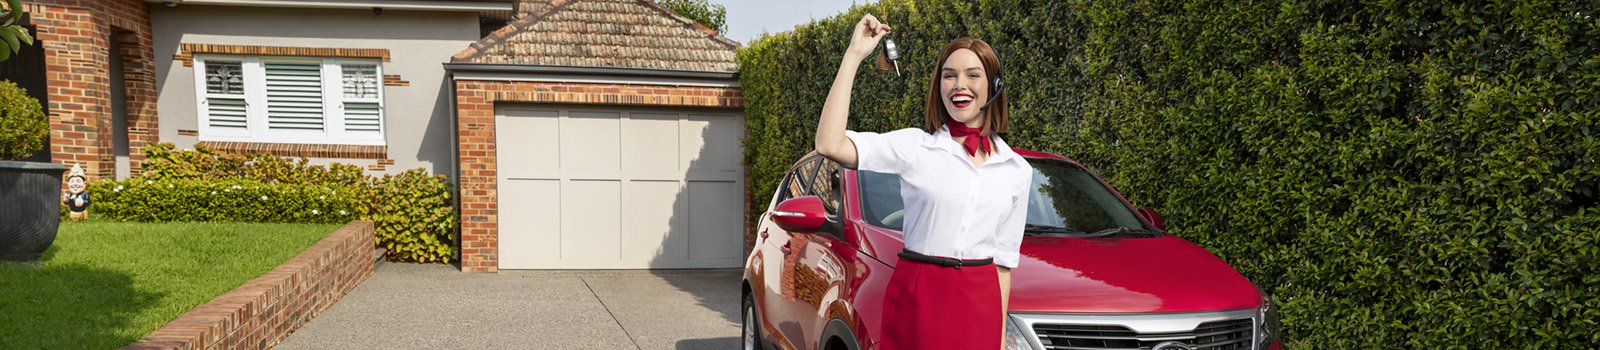 AAMI girl standing next to car in a driveway dangling keys